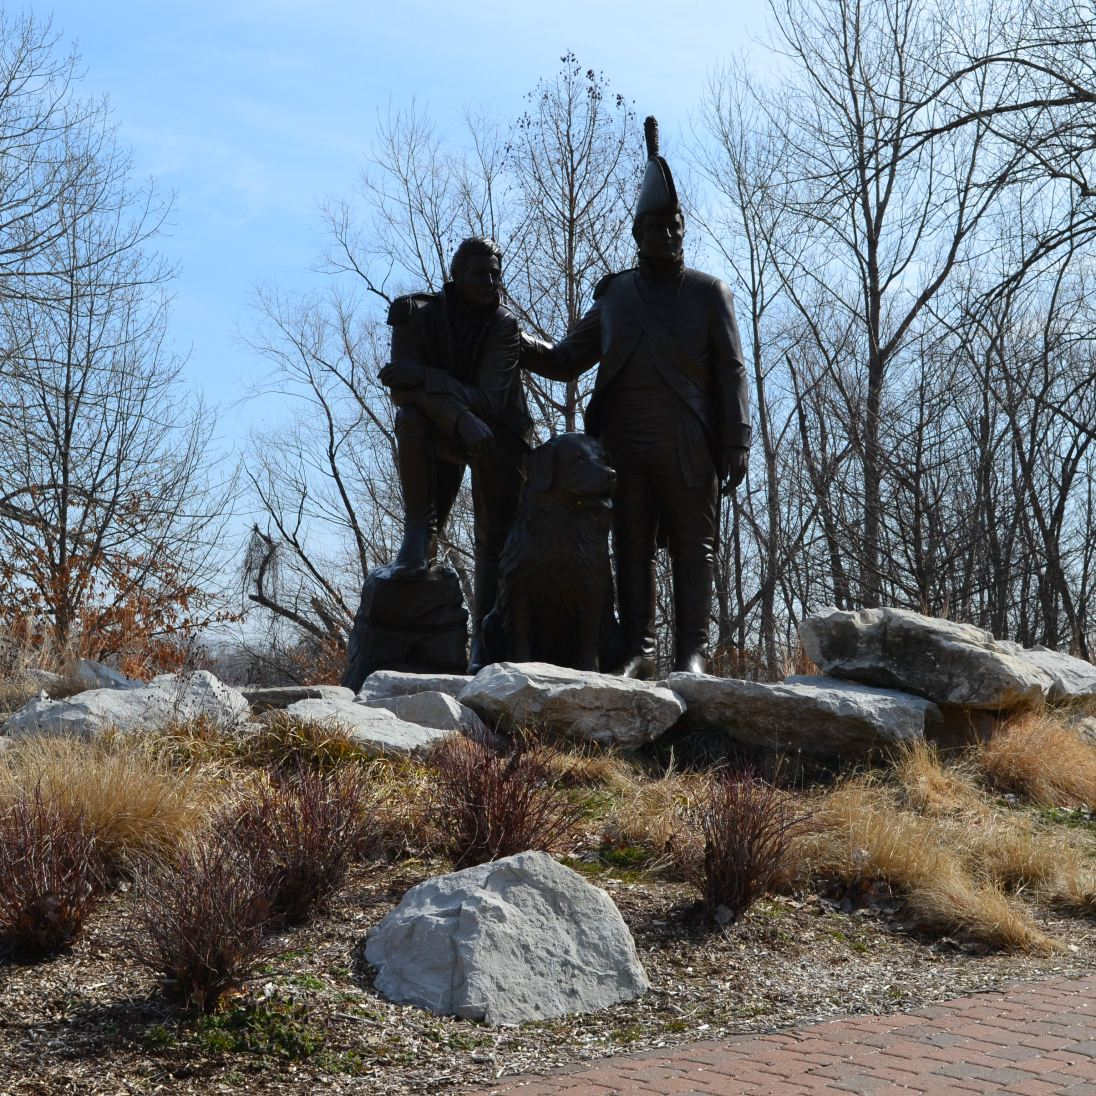 A 15 foot statue of exploration duo Lewis and Clark in St. Charles, MO.